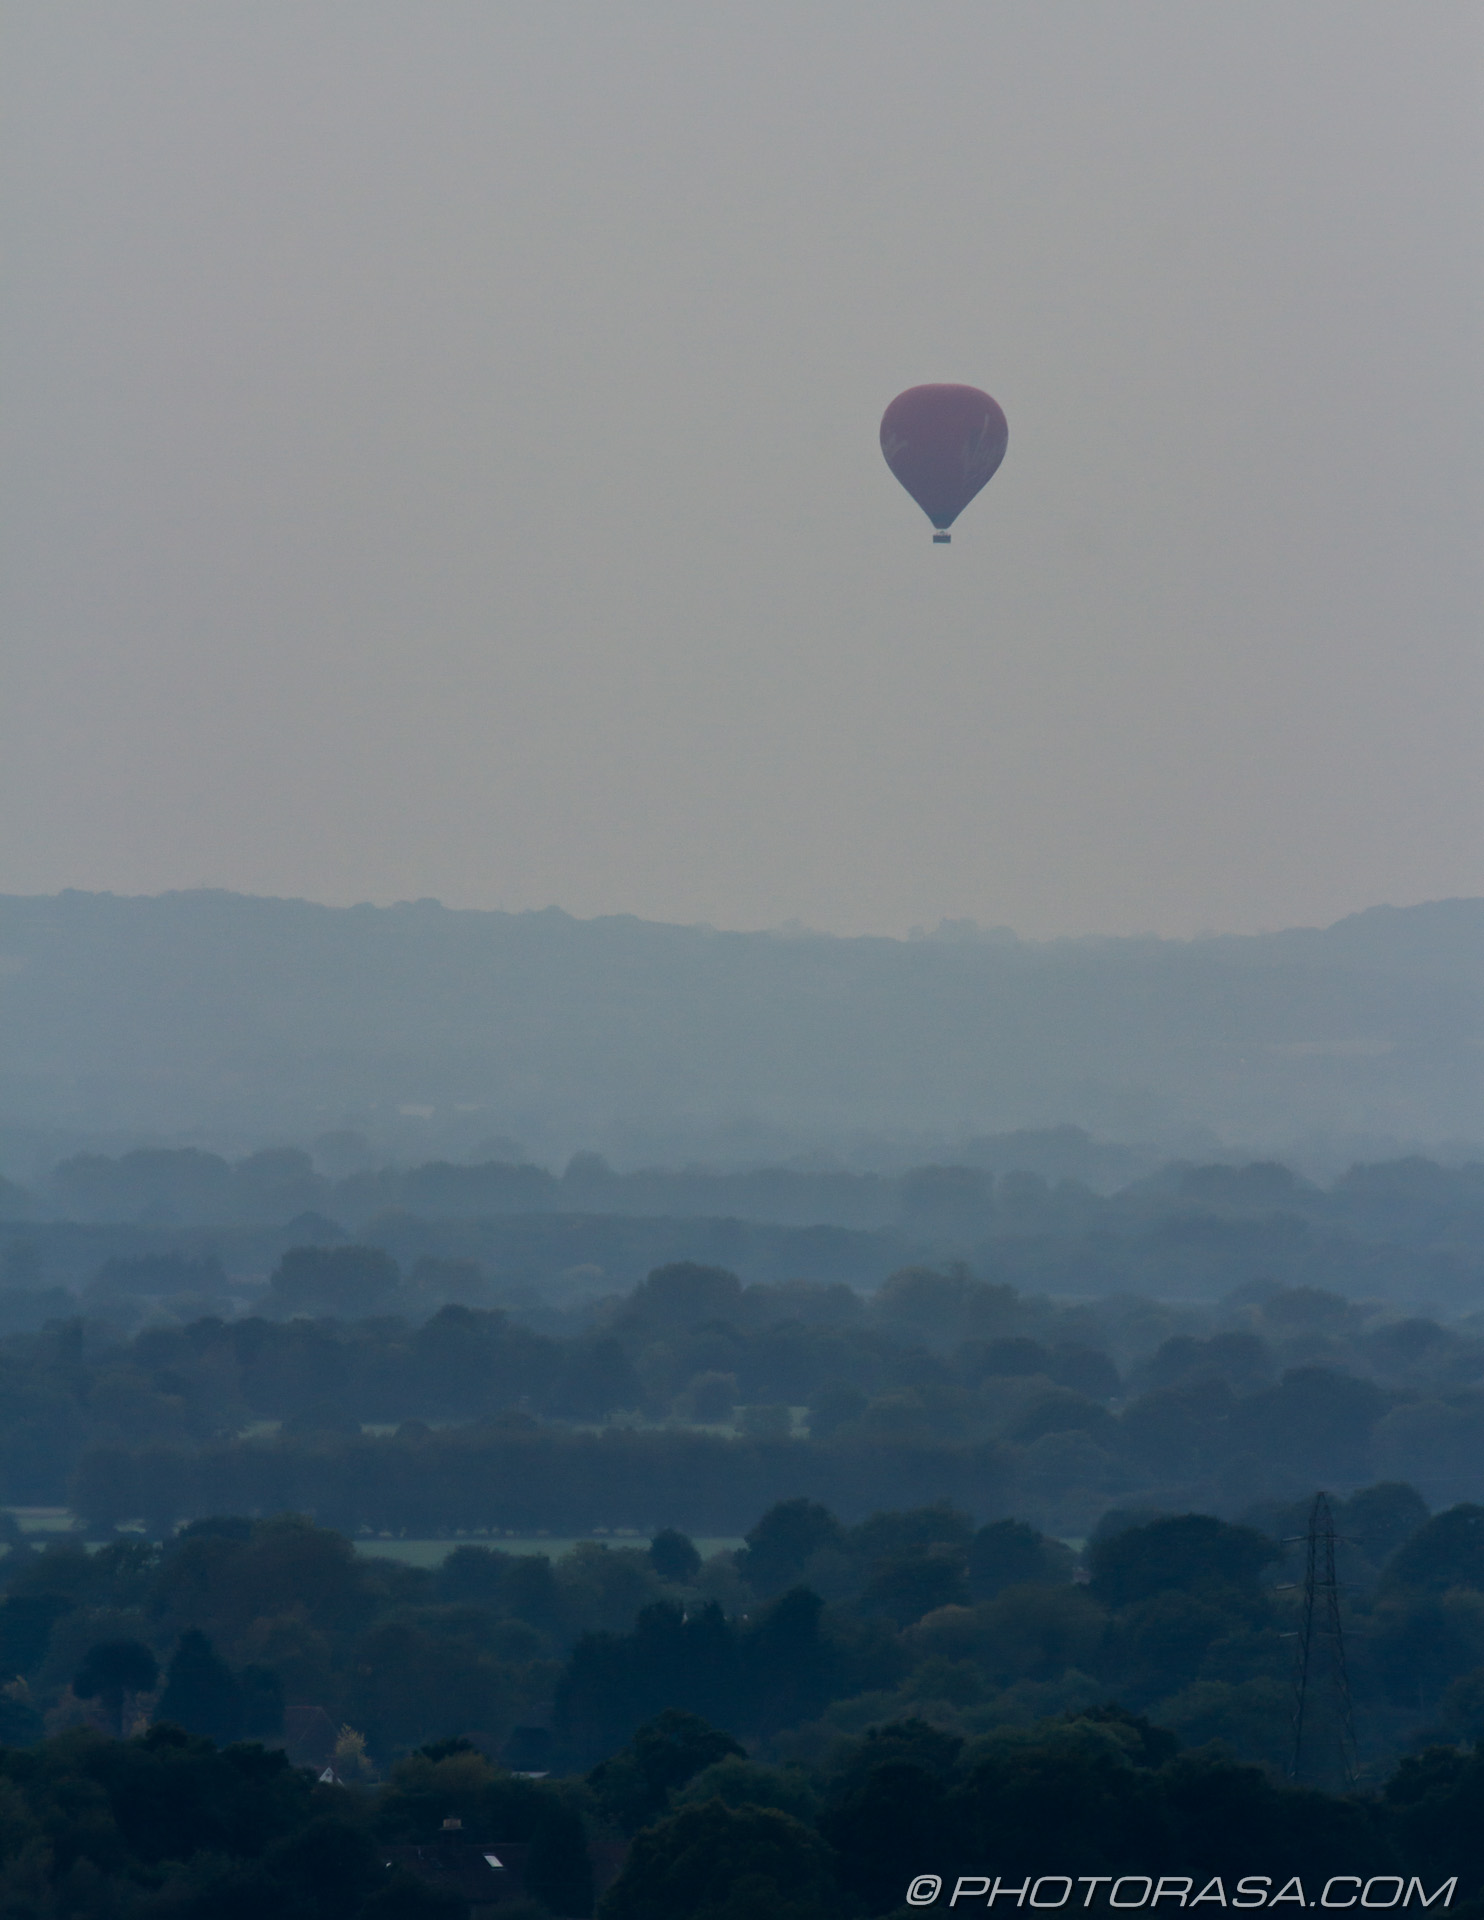 https://photorasa.com/balloons-evening-sky/hot-air-ballon-of-misty-countryside/